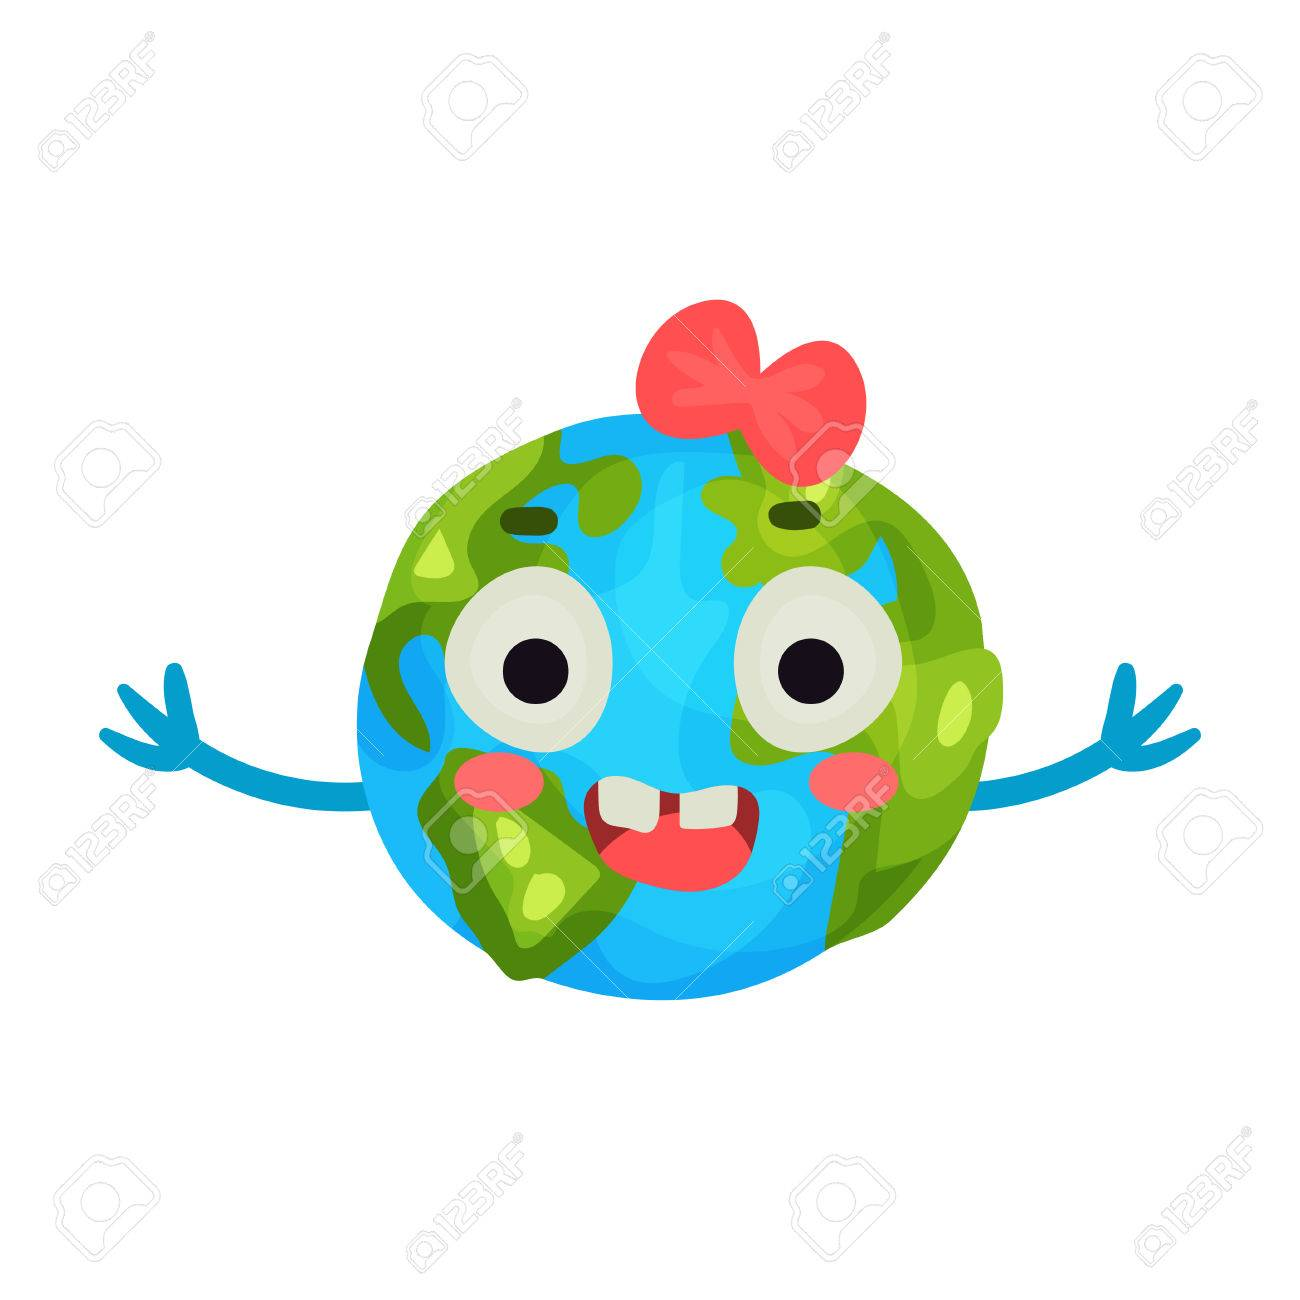 Funny Smiling Cartoon Earth Planet Emoji With Red Bow Humanized